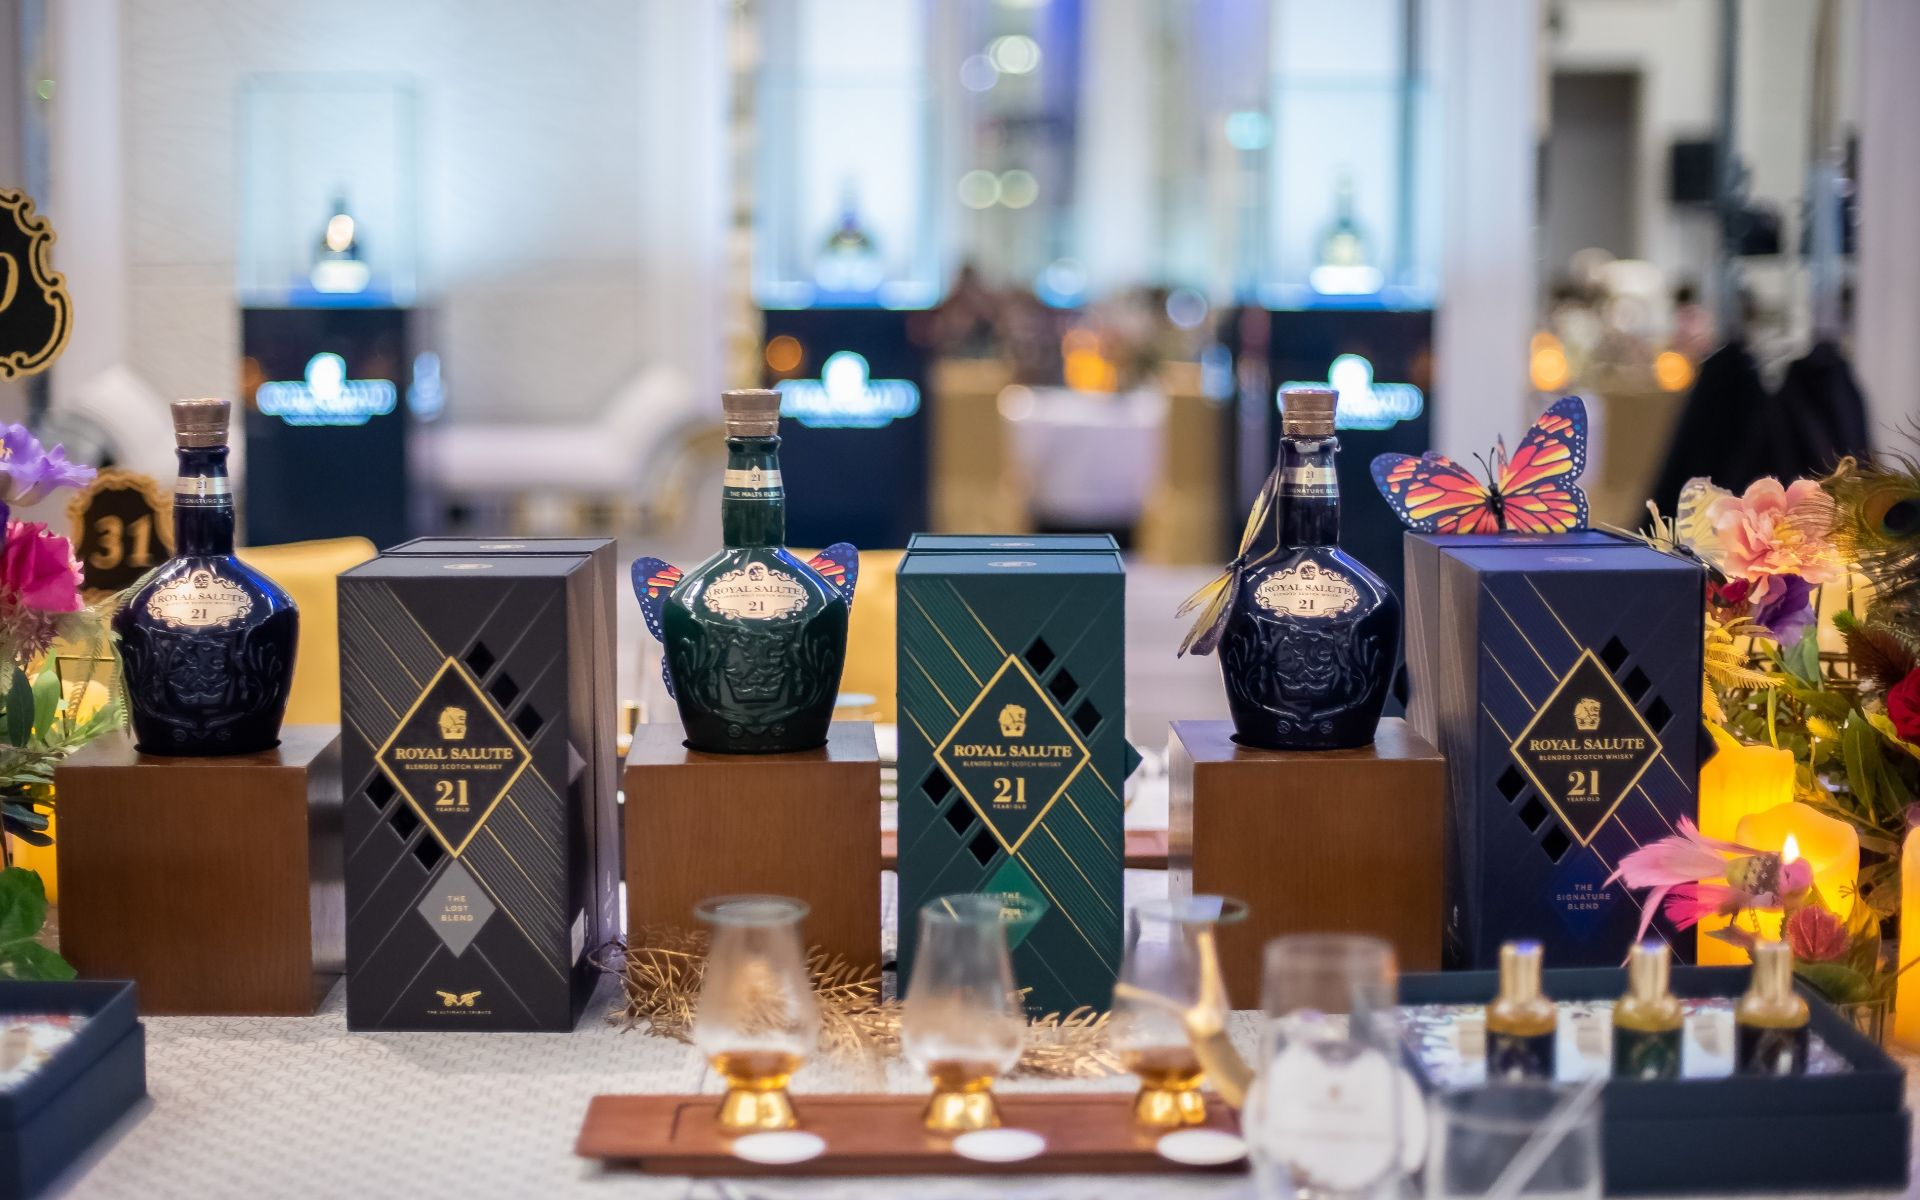 Pair Rare Royal Salute Whiskies With Fine Food & Perfumes At The Olfactory Studio Experience